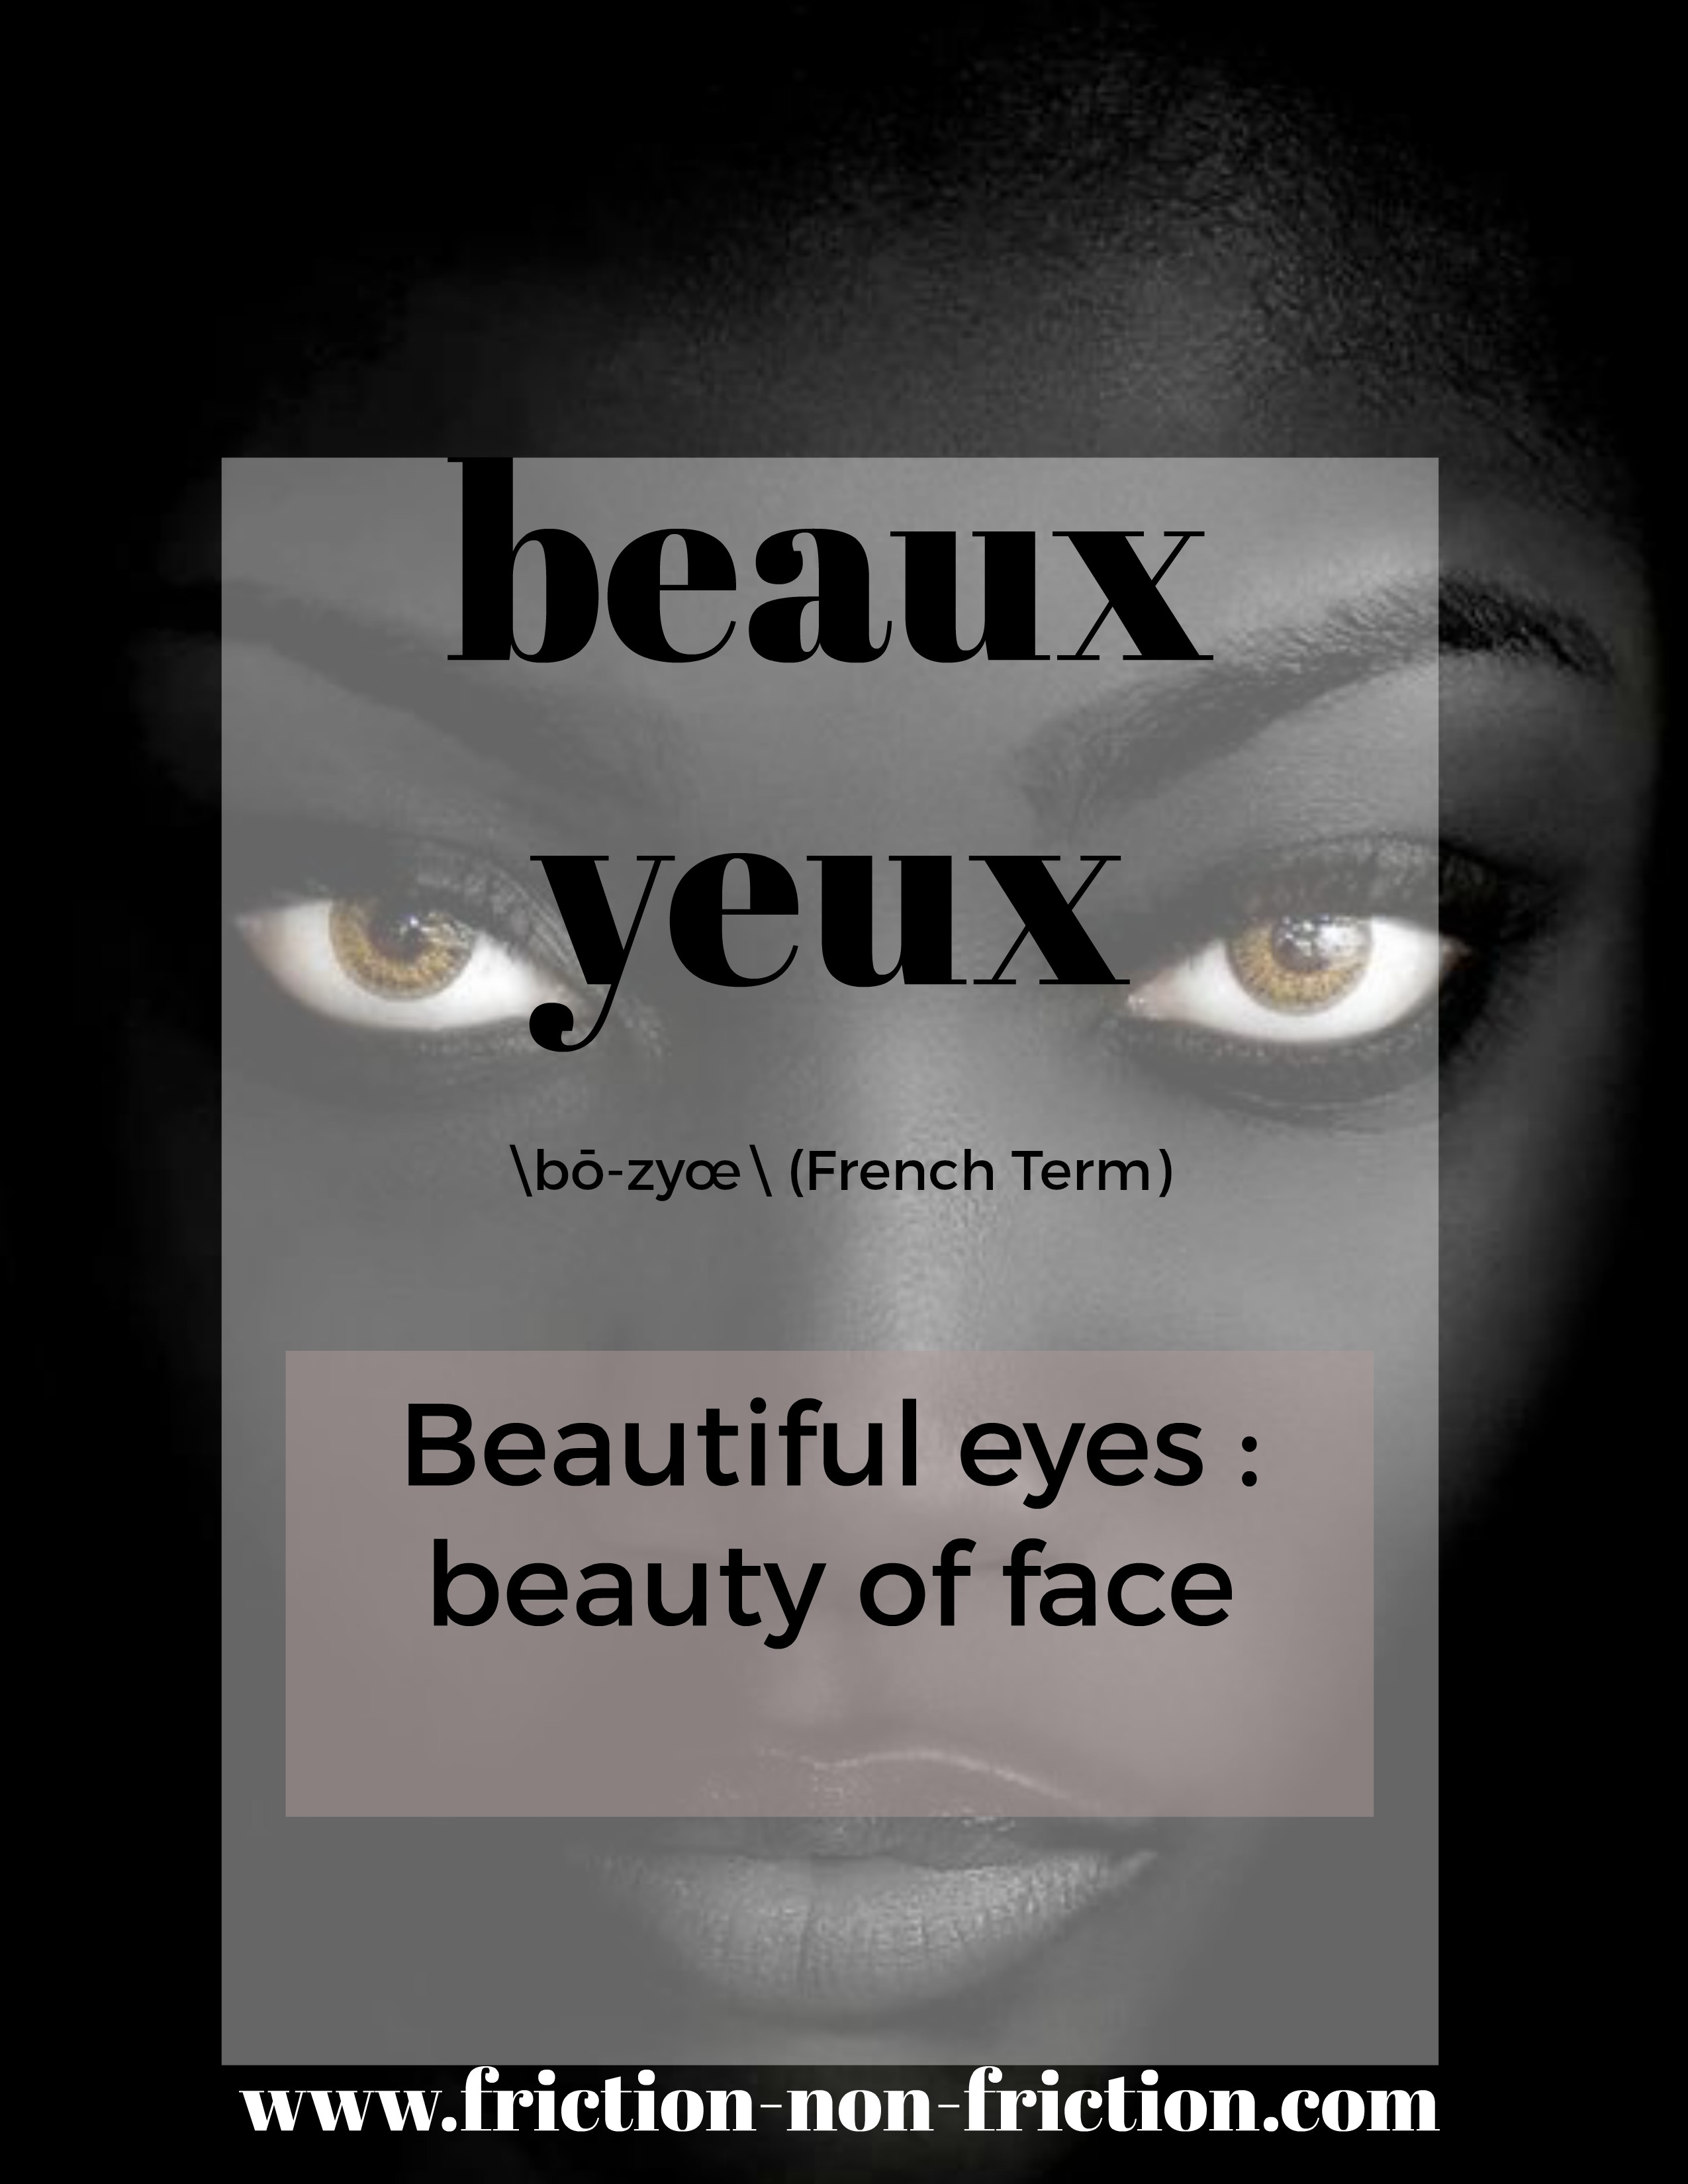 Beaux Yeux -- another great FRICTIONARY definition from Friction|non|Friction